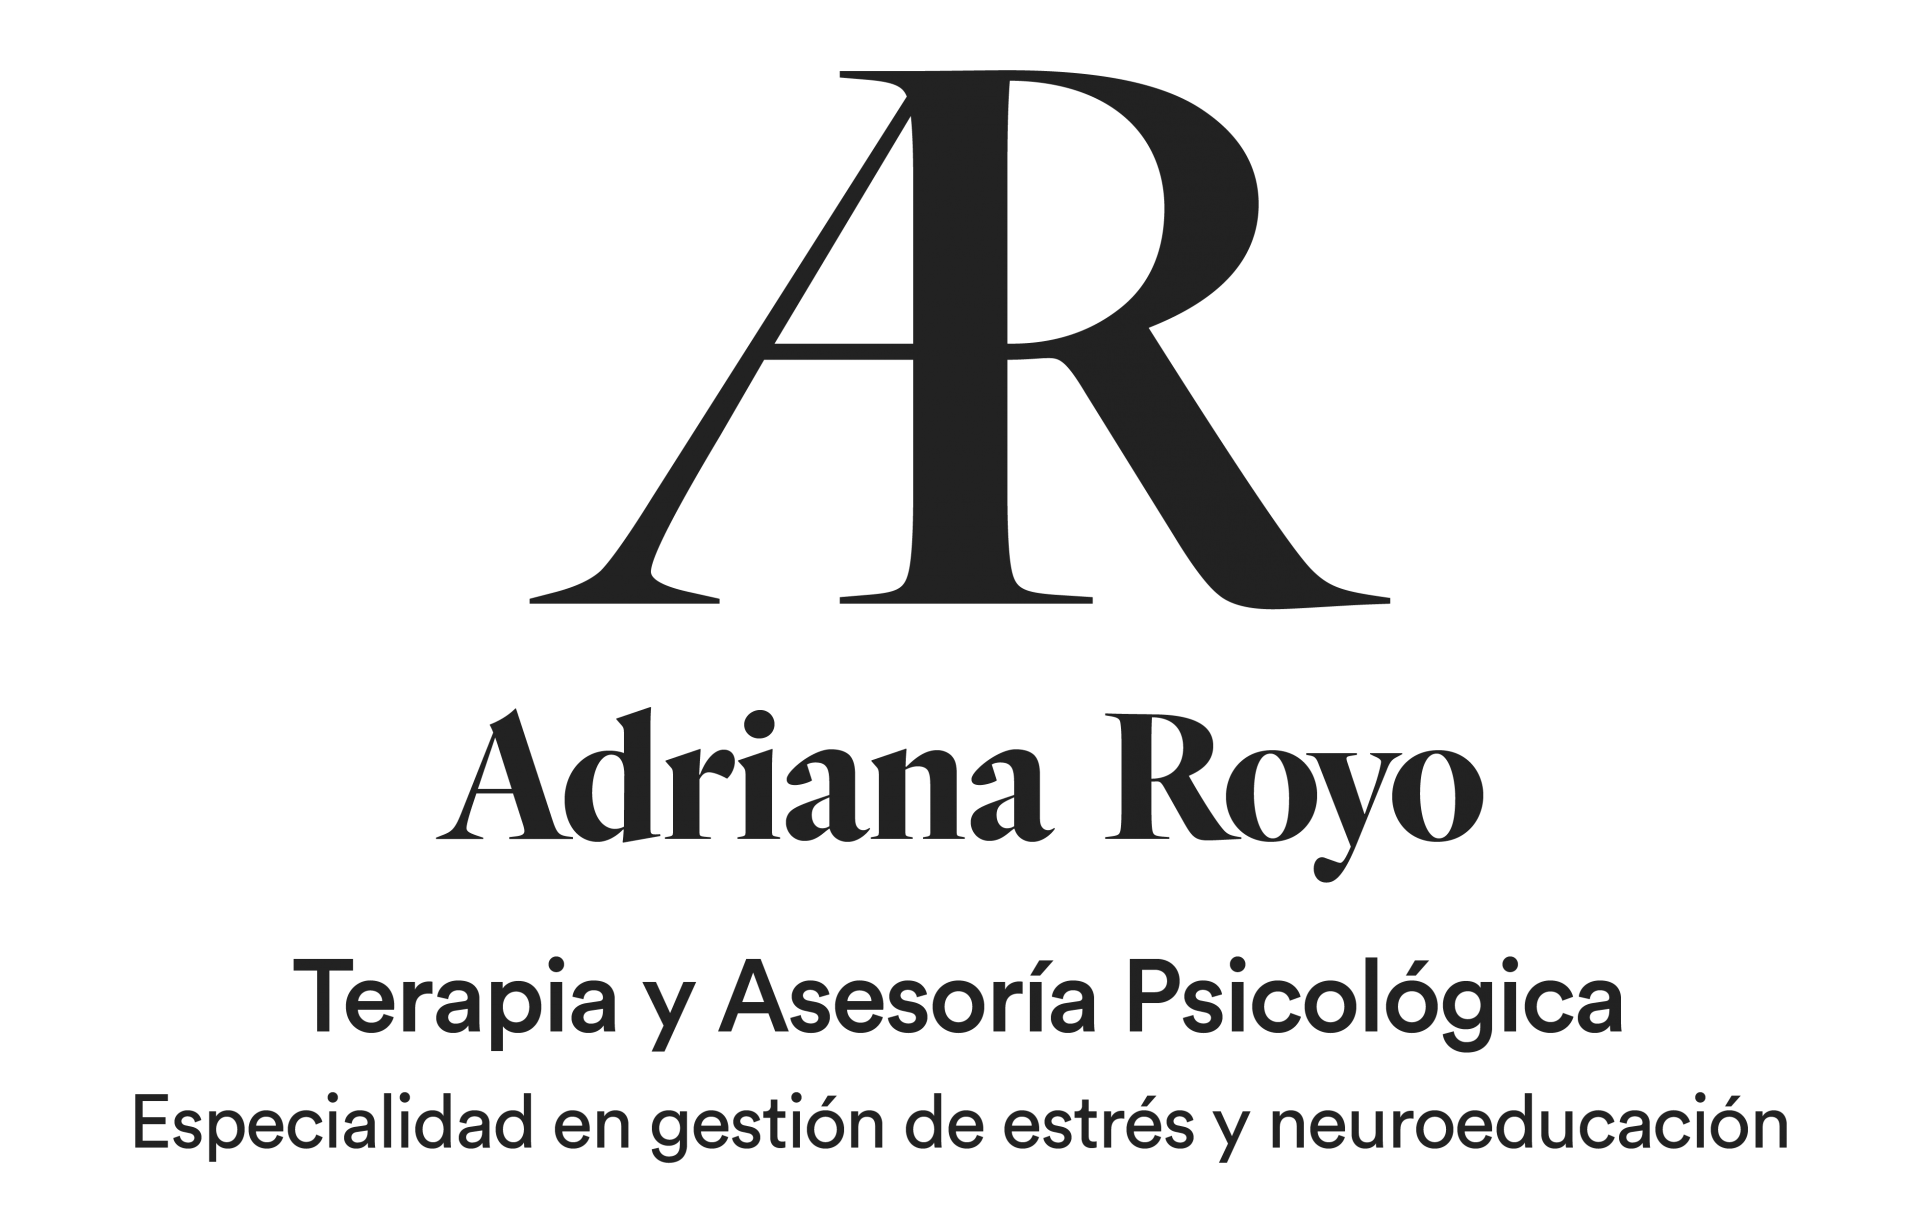 Adriana Royo Inicio